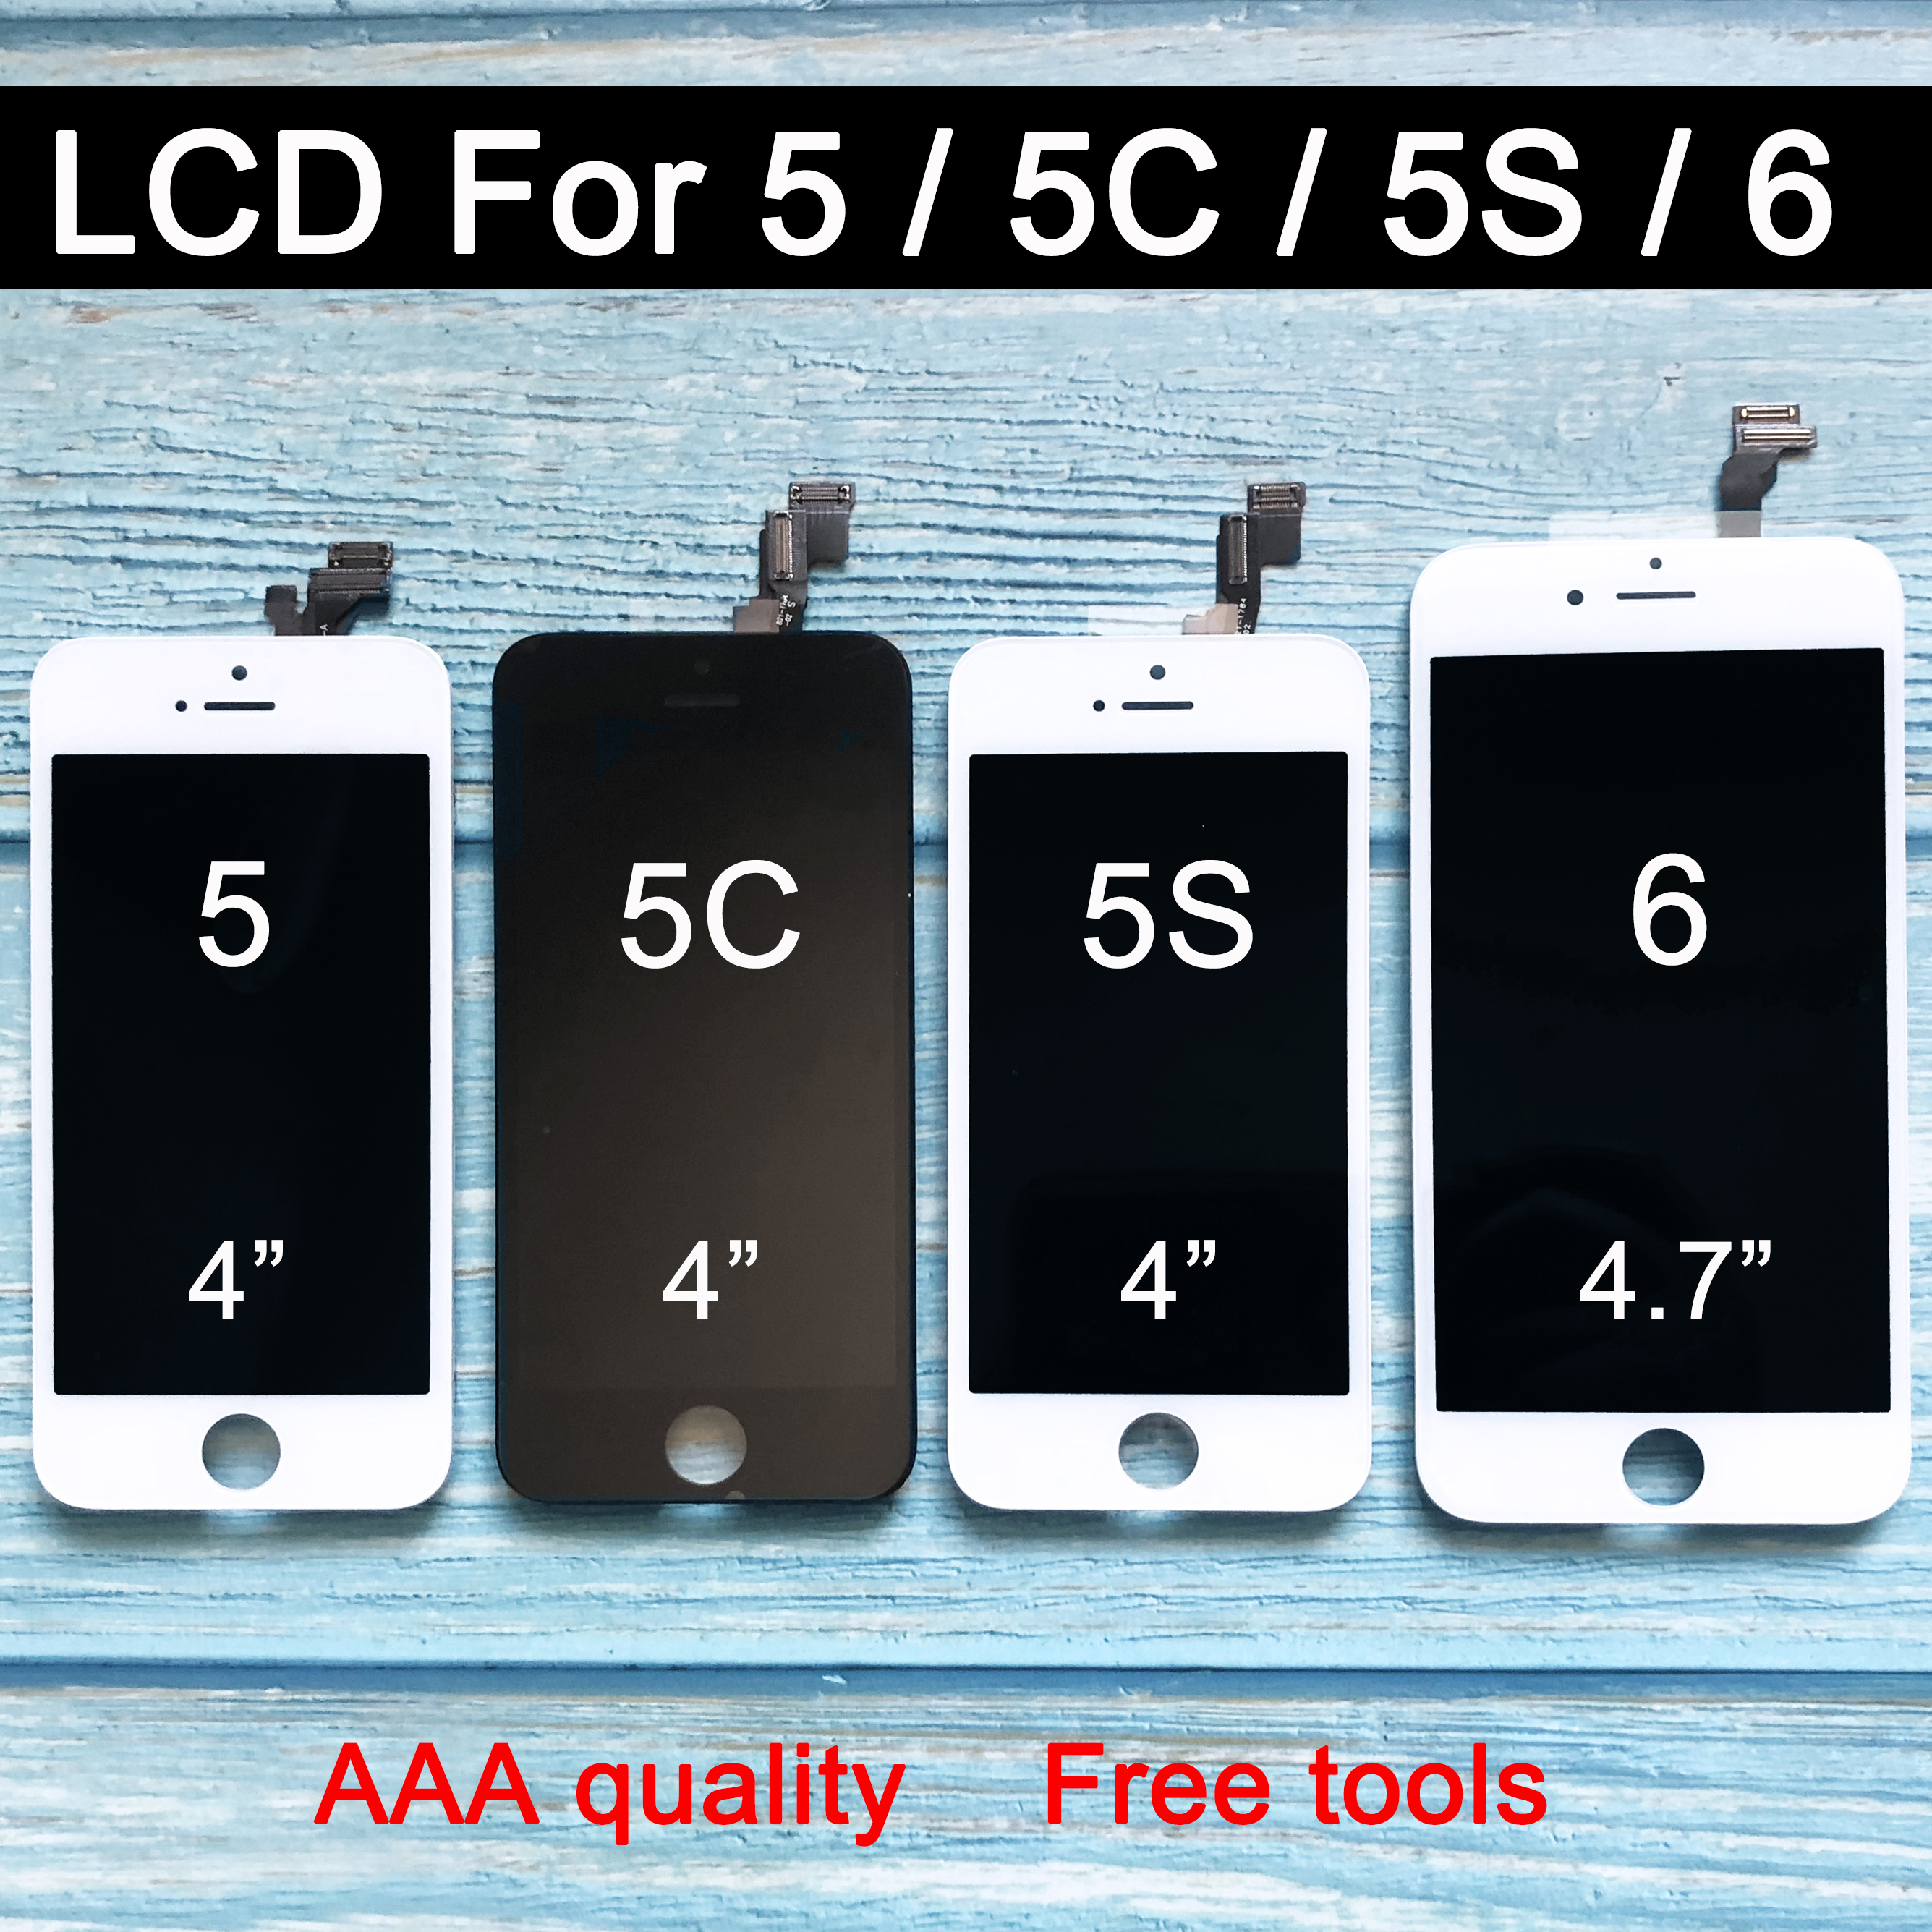 Factory Sale LCD For Iphone 6 lcd Display for iphone 5 5c 5s LCD Screen Display  Touch Digitizer Assembly  Screen Replacement-in Mobile Phone LCD Screens from Cellphones & Telecommunications